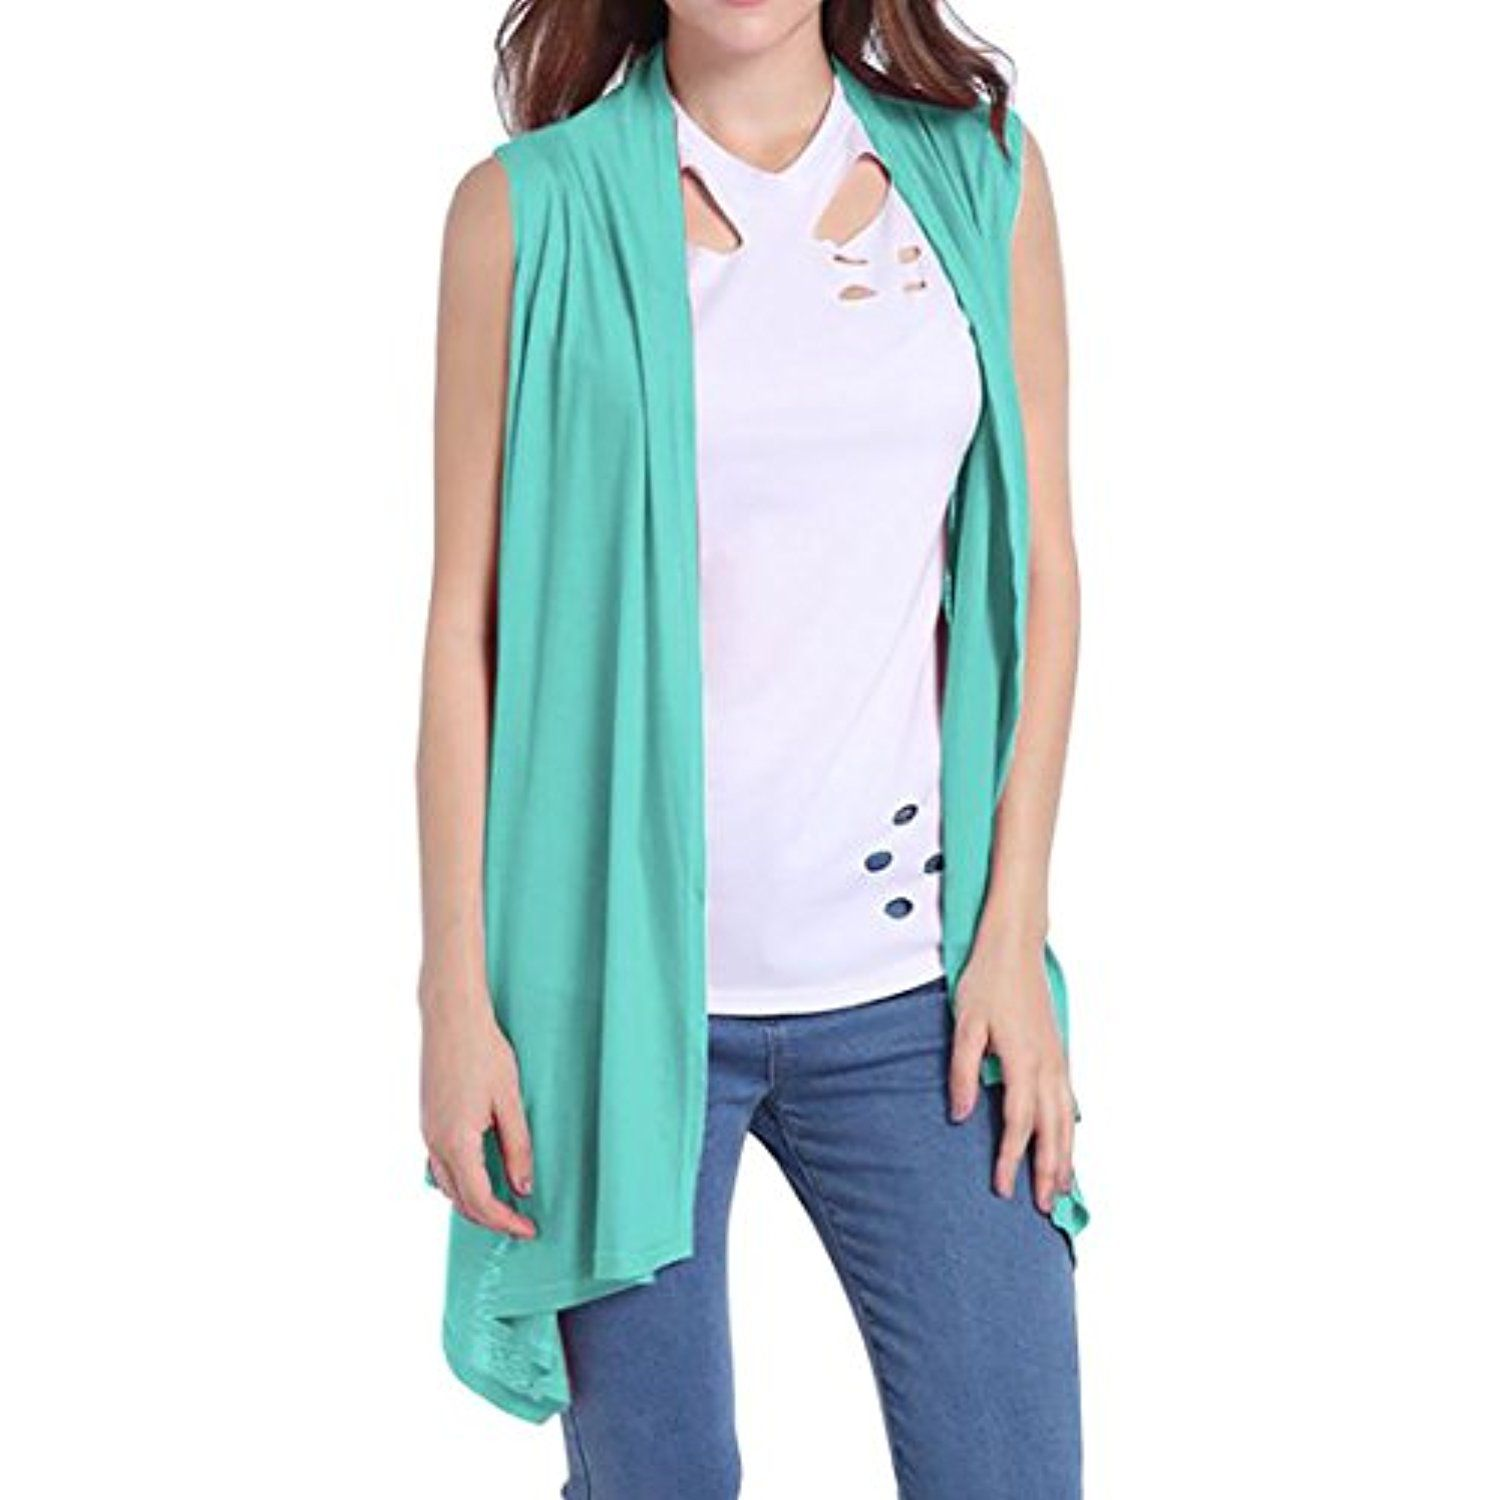 Women's Solid Draped Open Front Sleeveless Cardigan Vest ** Read ...